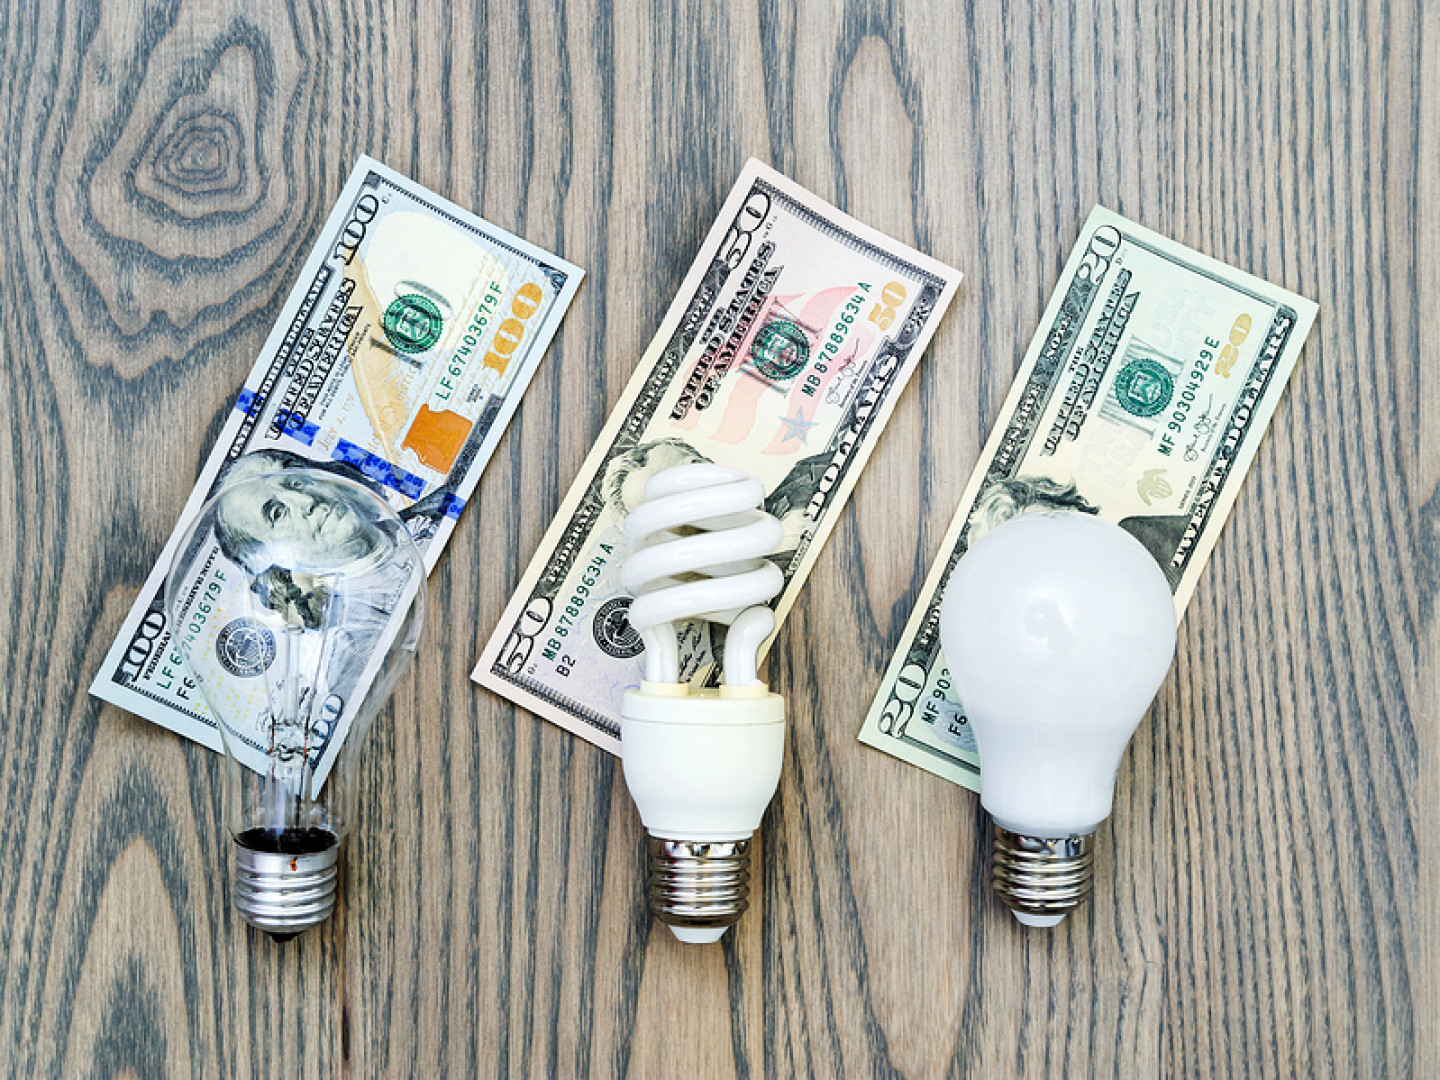 Trade Your Irritating Fluorescent Bulbs for LED Lighting